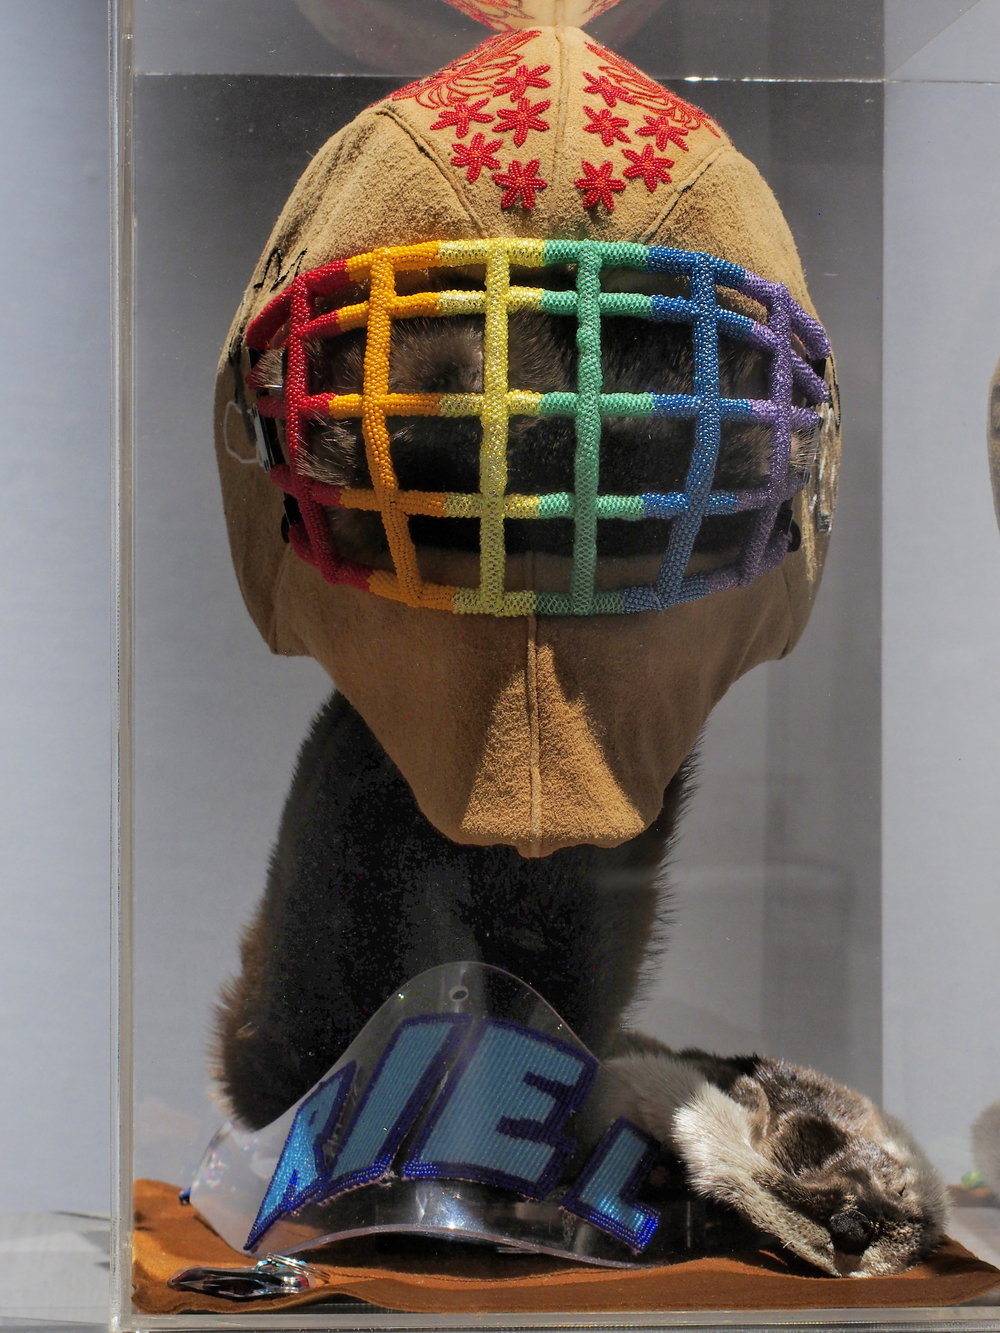 Judy Anderson,  This one brings me the most pride,  2016, beads, moose hide, goalie helmet, plexi, otter pelt.